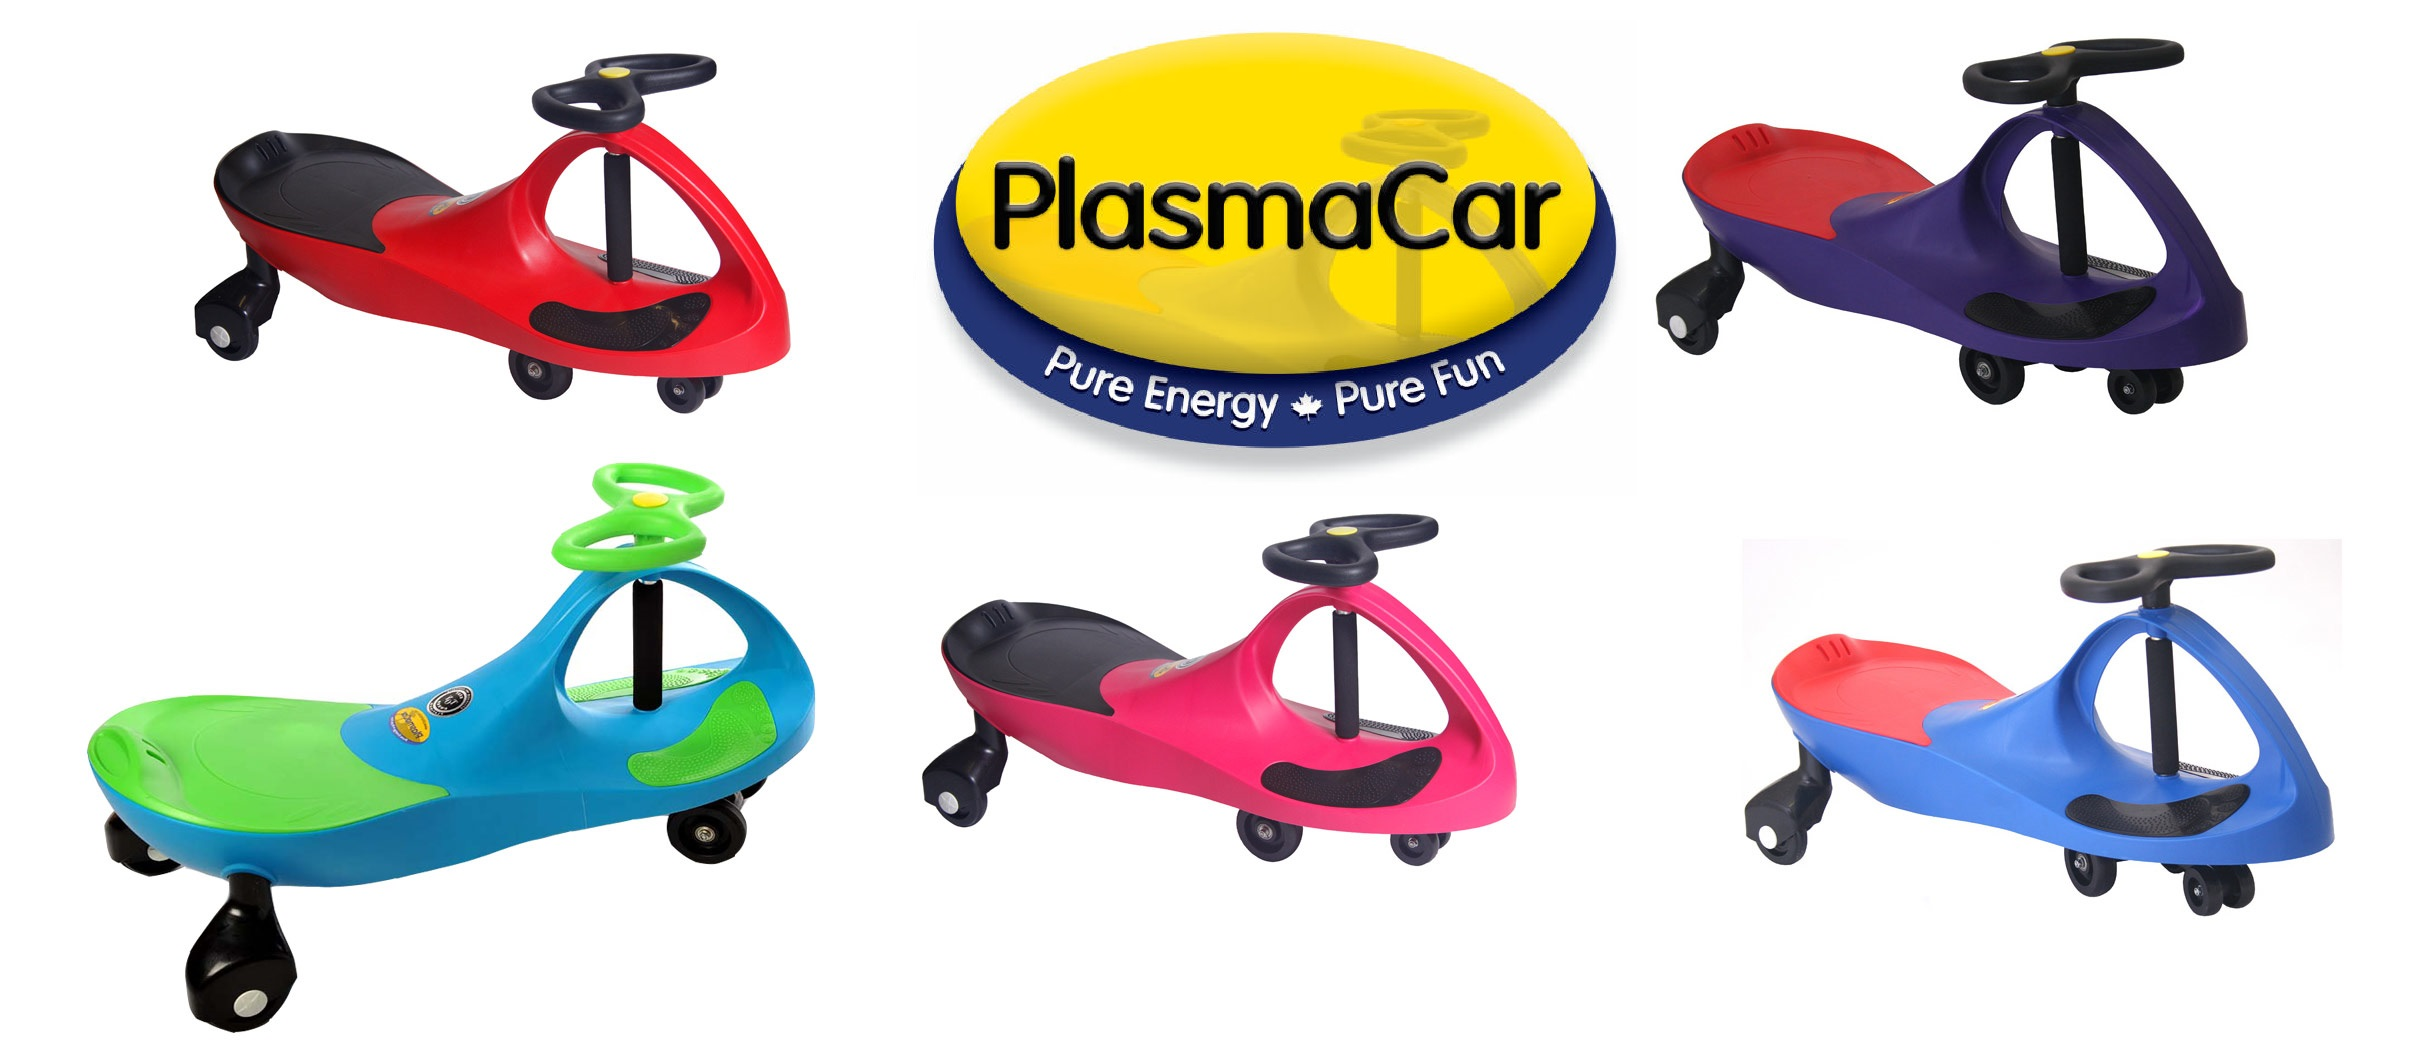 Plasma Cars ? Learning Express Gifts- Brands included PopSocket, Star Wars Lego, Pokemon ...